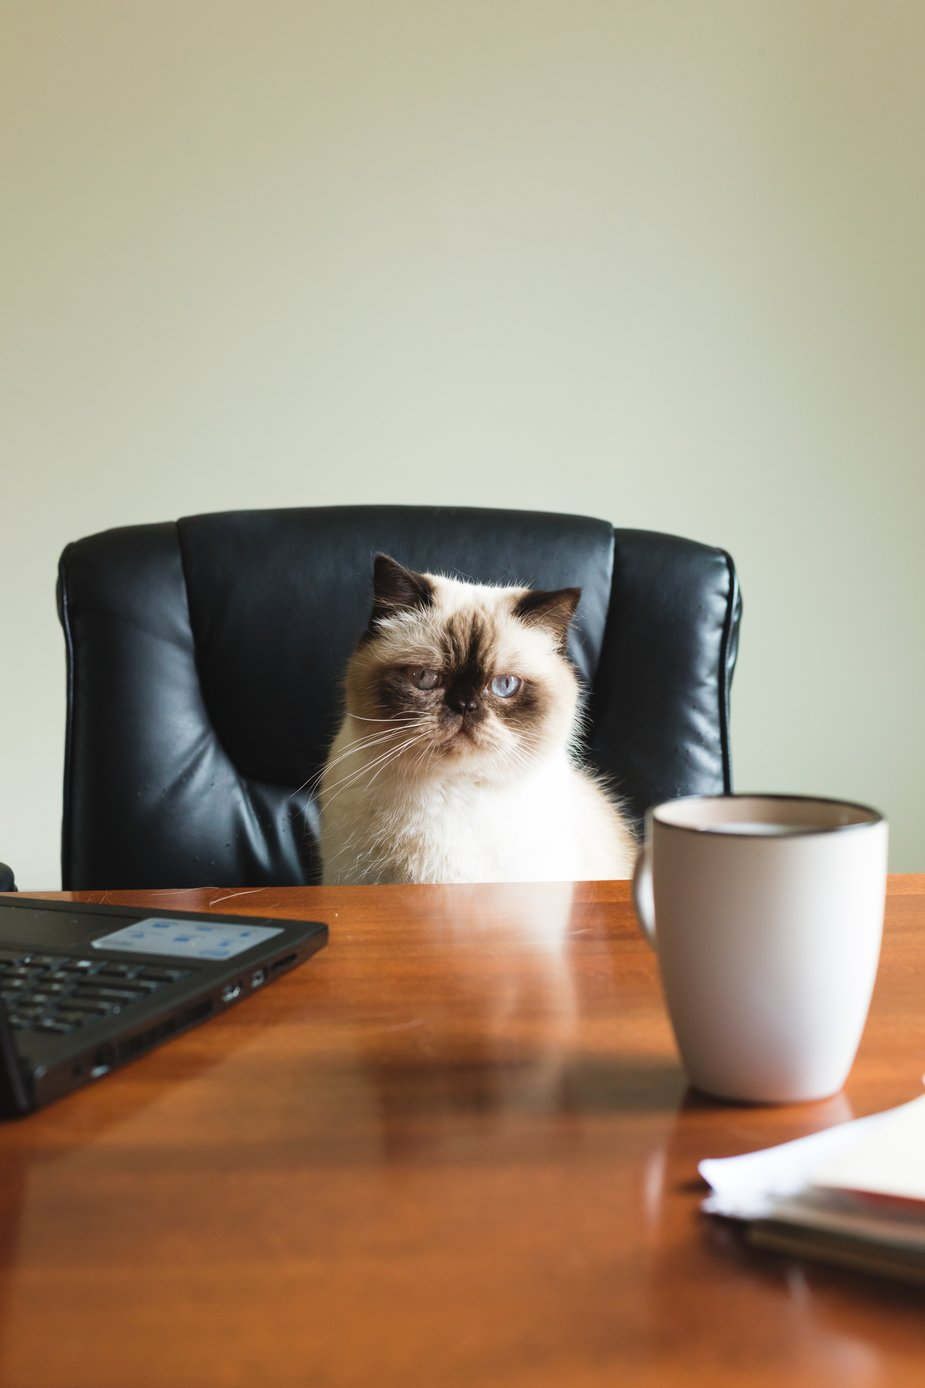 A small white cat sitting at a desk